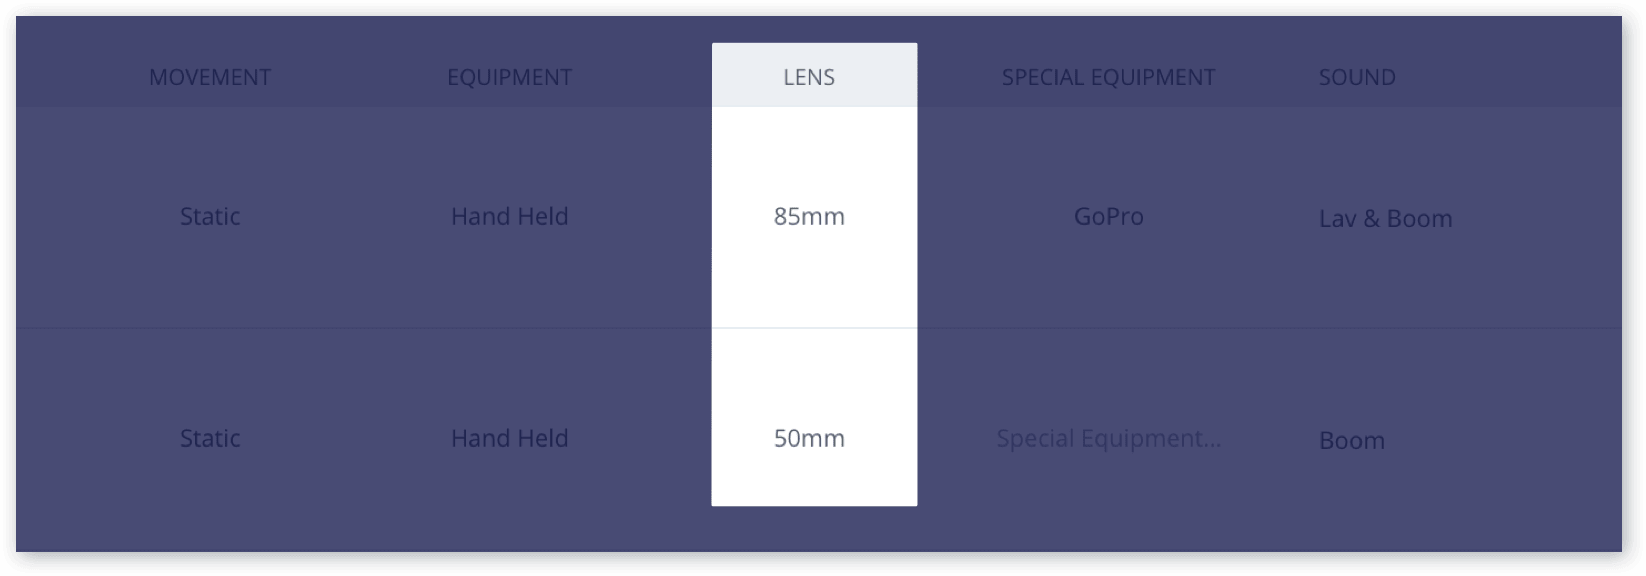 The Only Shot List Template You Need (with Free Download) - Lens